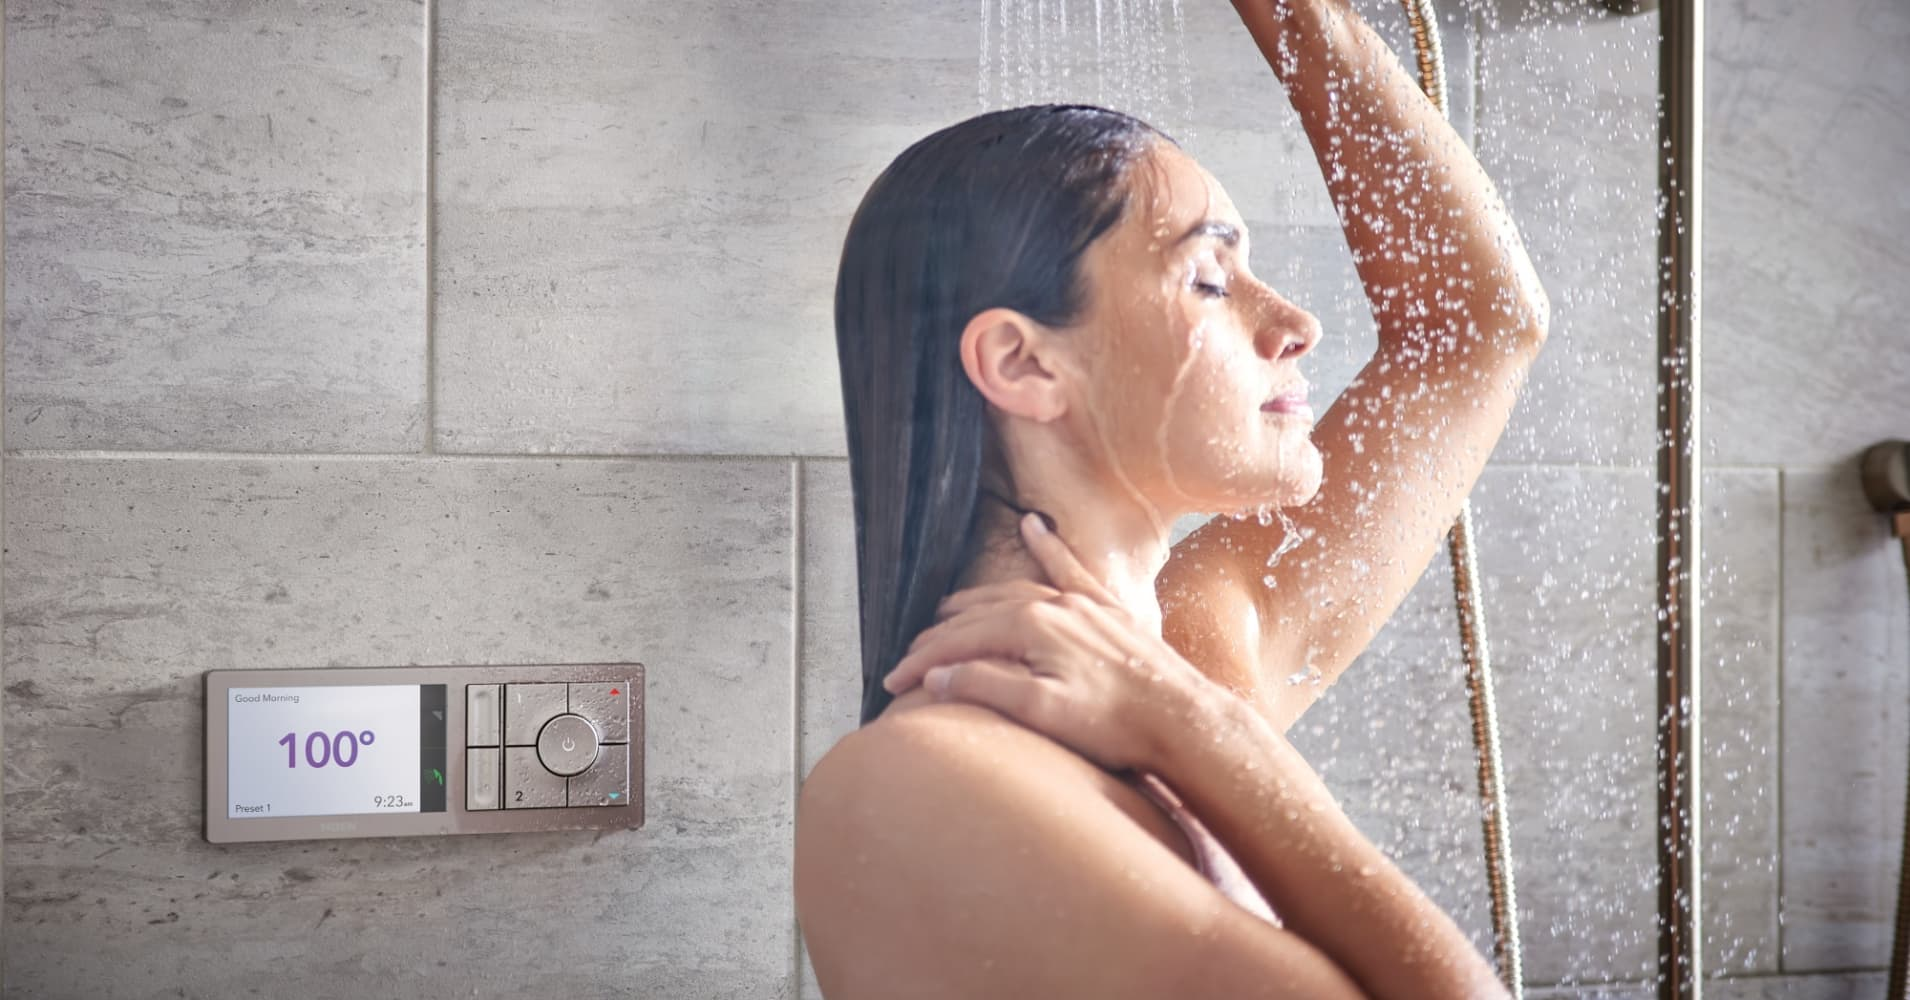 U by Moen shower system, which can connect with Amazon's Alexa voice assitant.